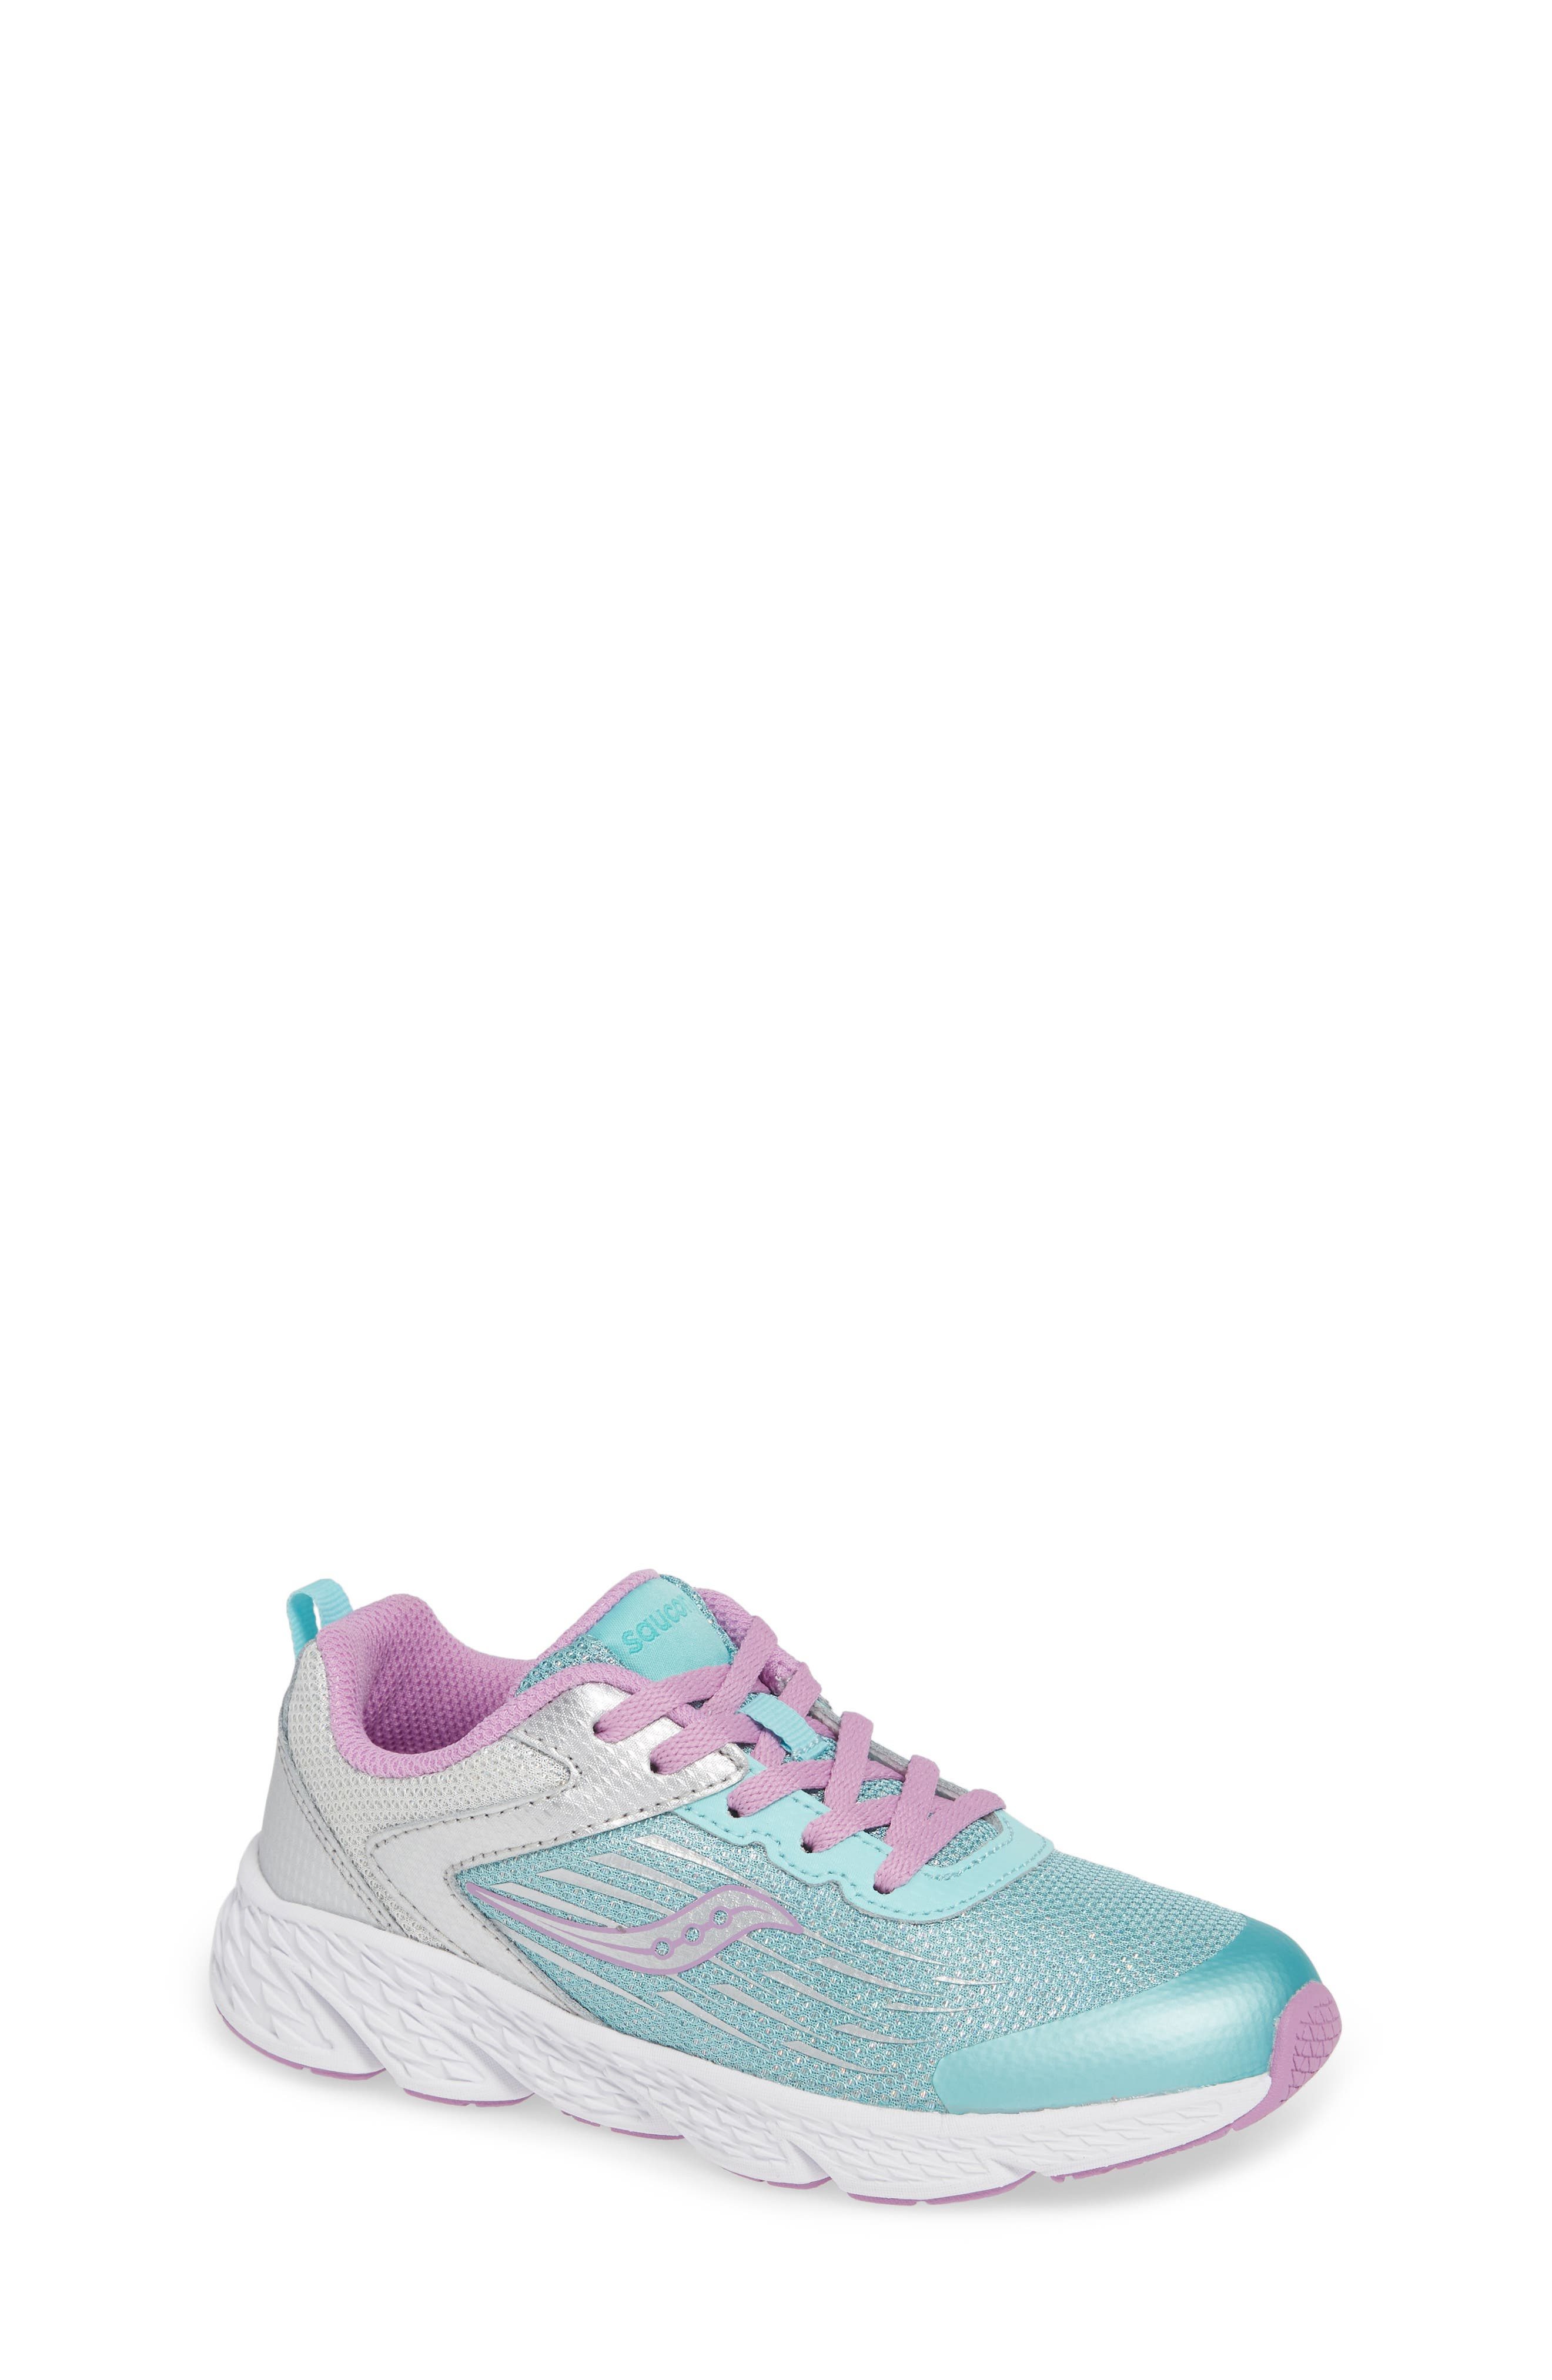 Wind Sneaker, Main, color, TURQUOISE/ SILVER